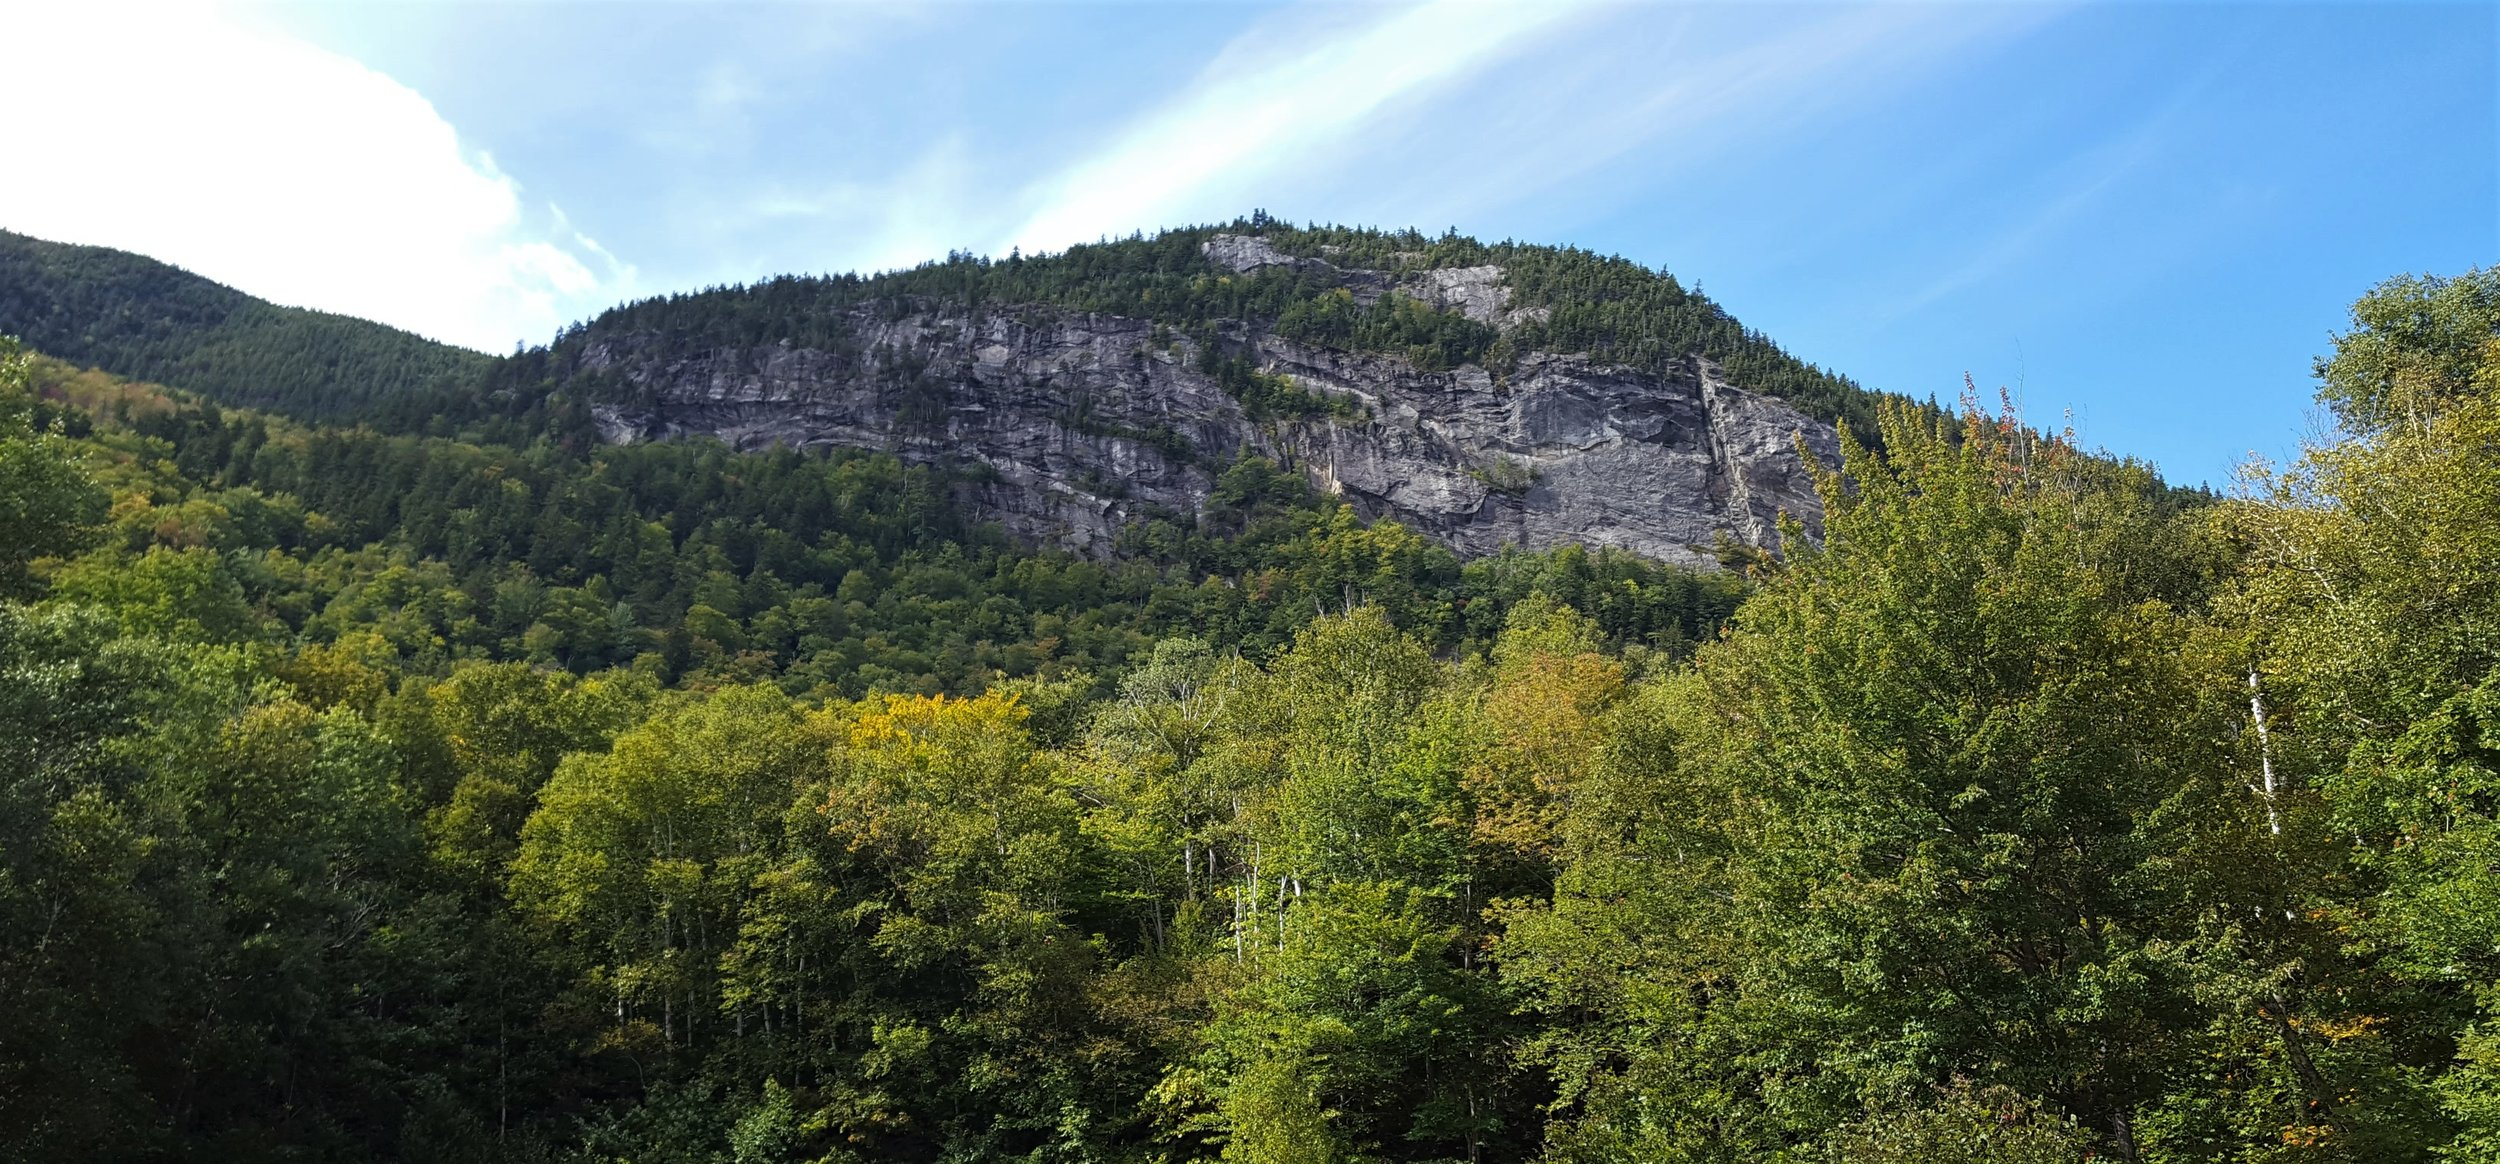 The Eyebrow from the parking area in Grafton Notch